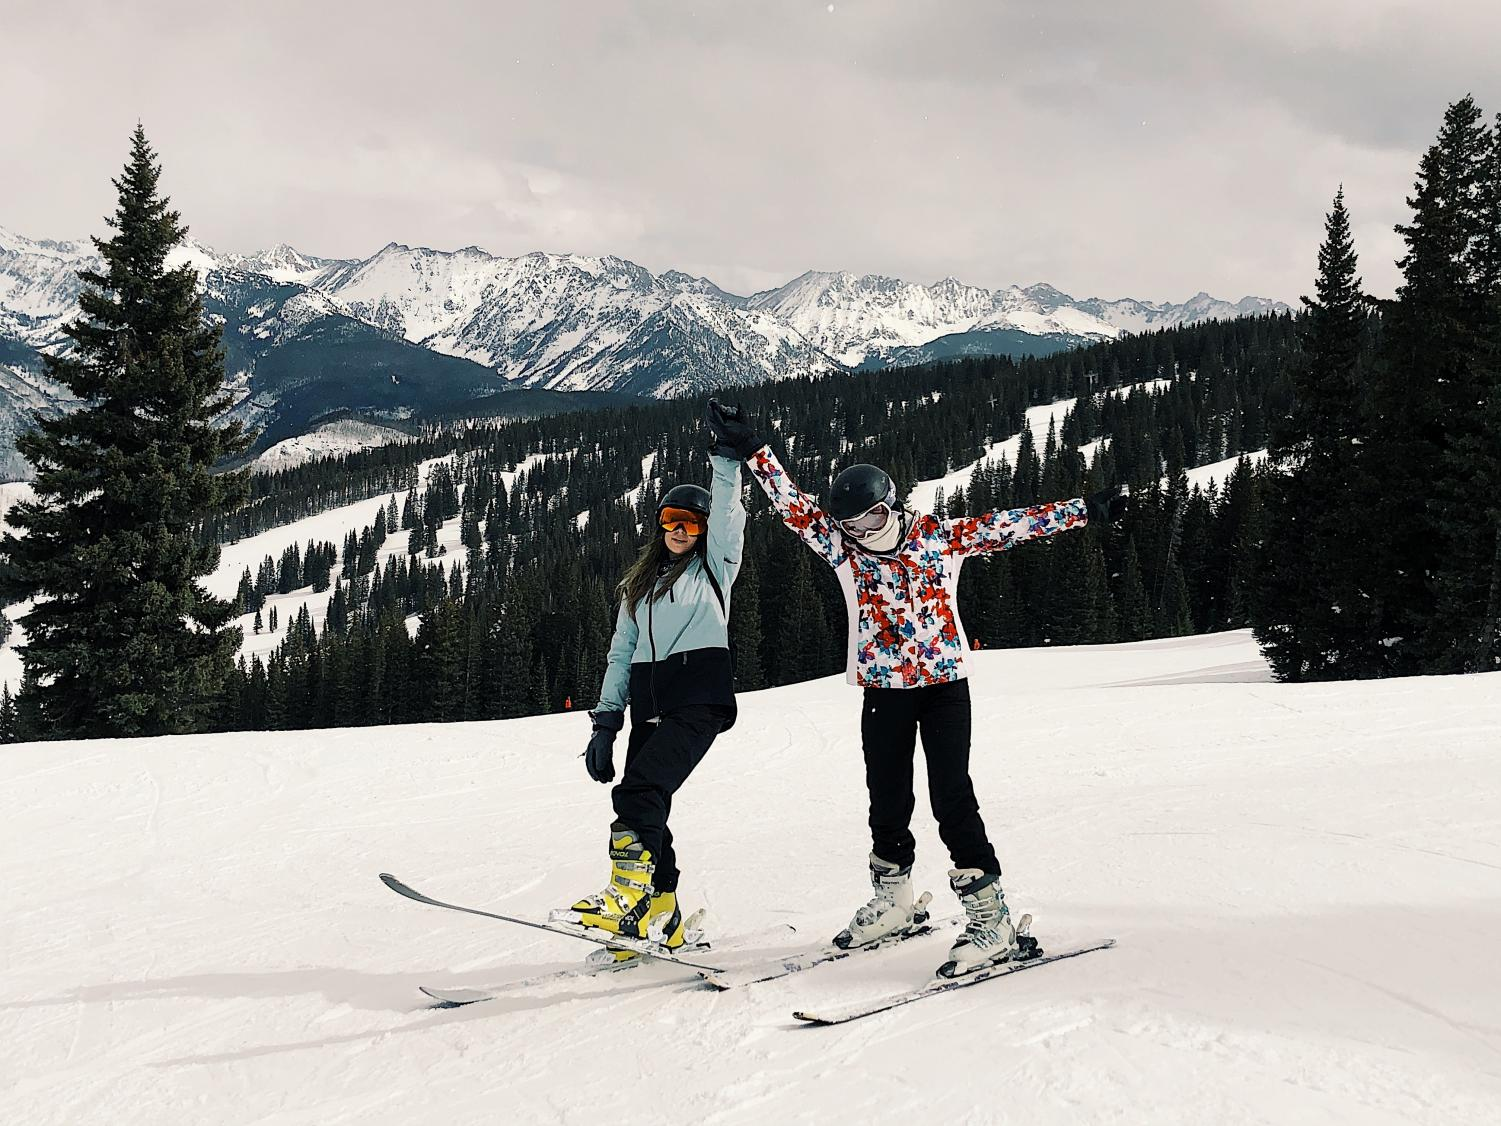 Hitting the Slopes During Covid-19? It's Easy if You Do it Smart.